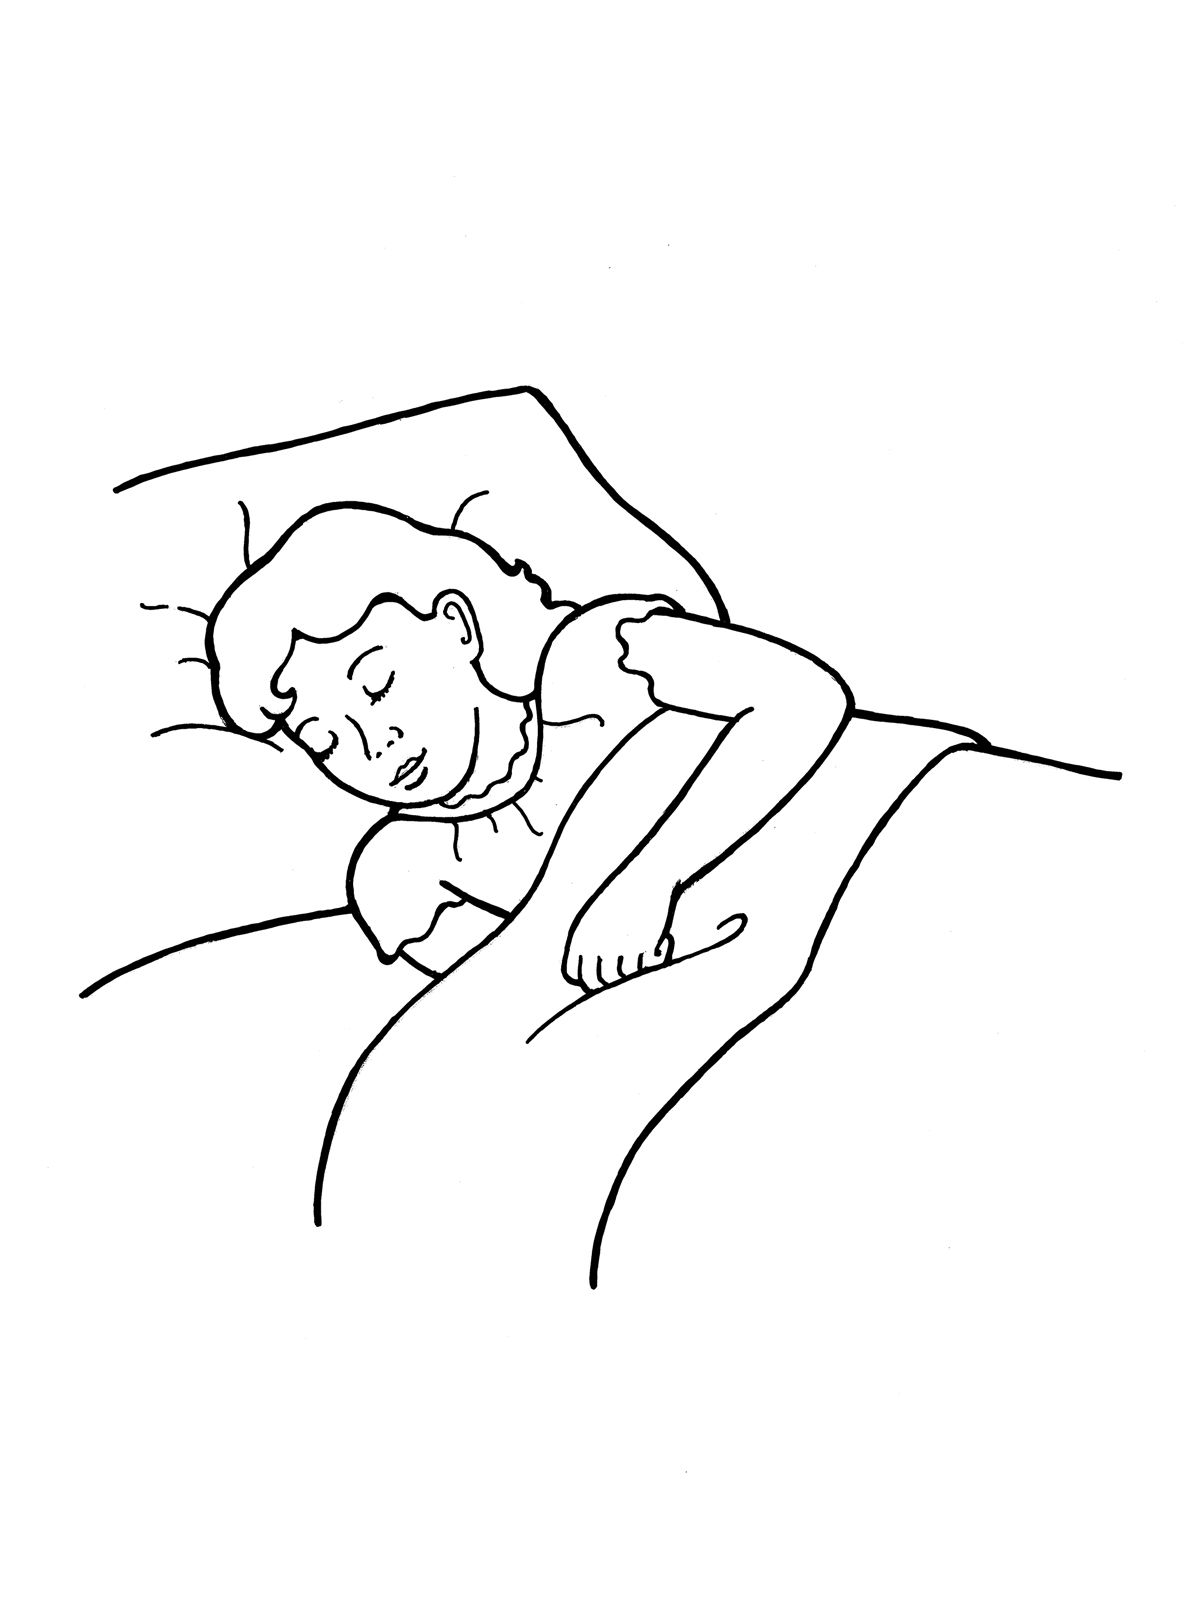 Sleep clipart black and white 4 » Clipart Station